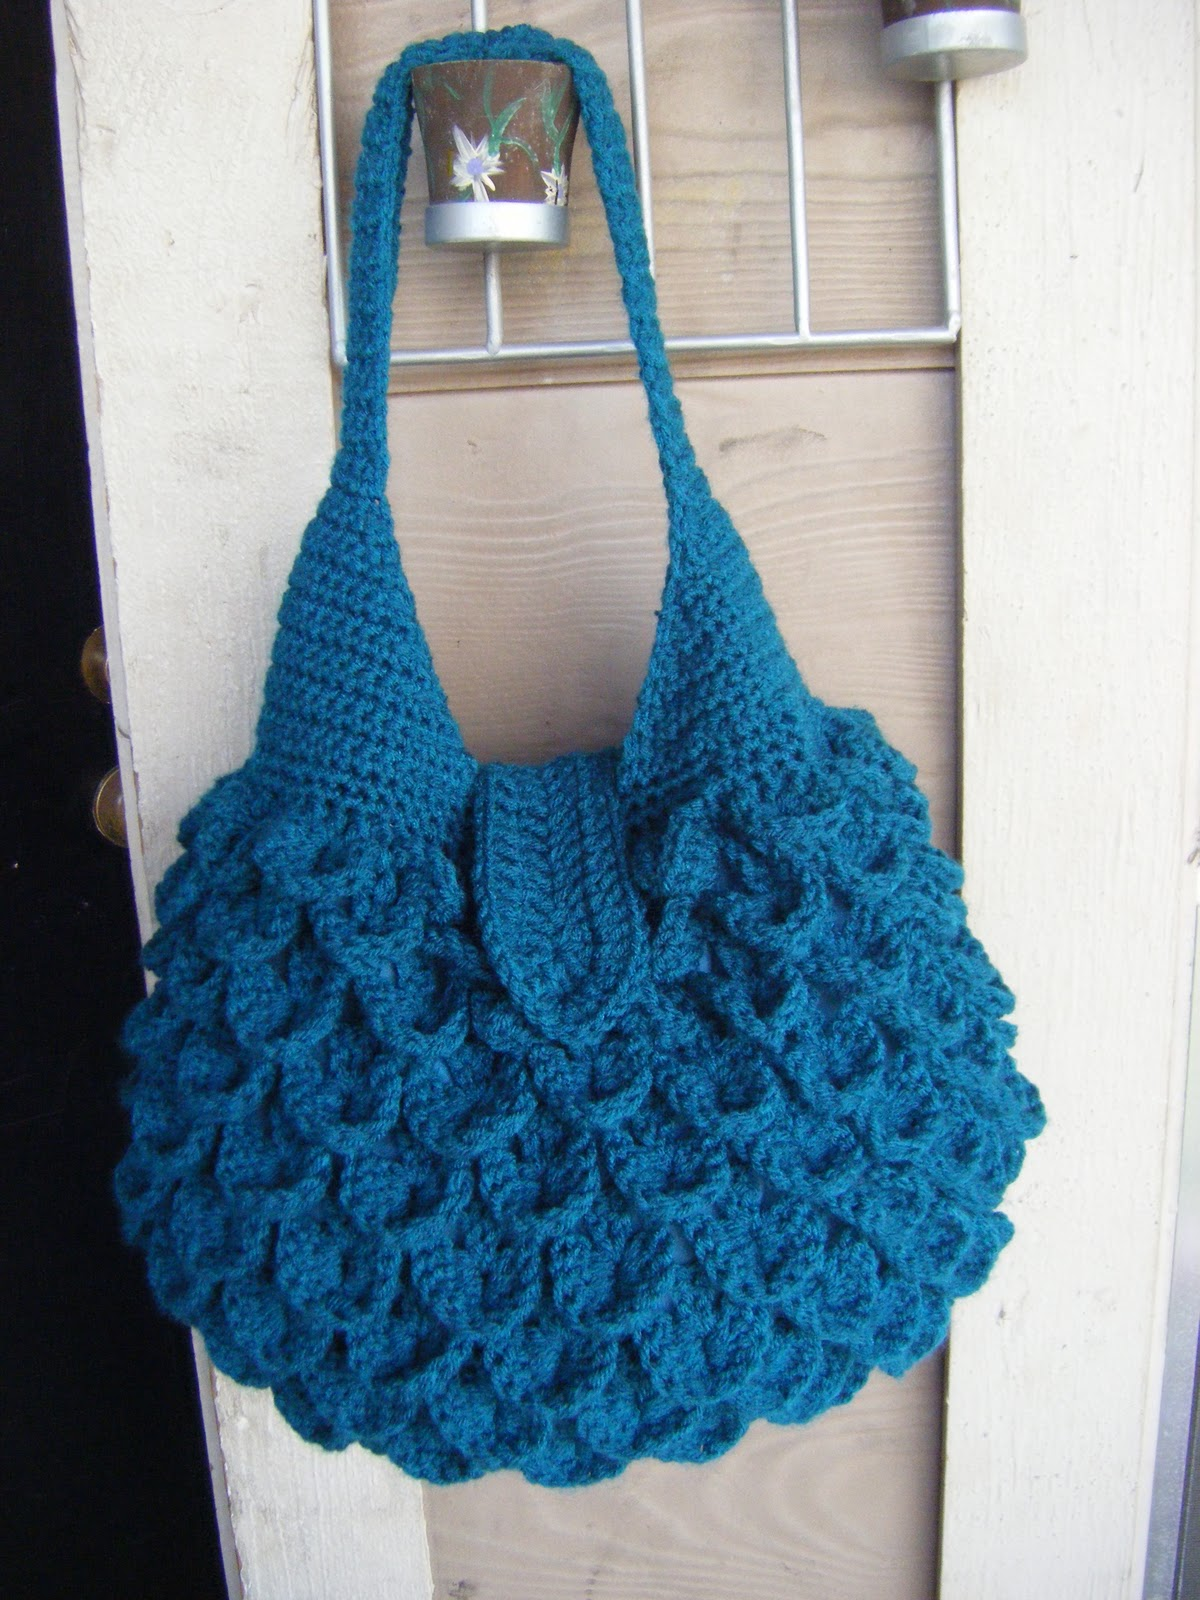 Crochet Bags And Purses Free Patterns : FREE CROCHET BAG HOLDER PATTERN - Crochet and Knitting Patterns